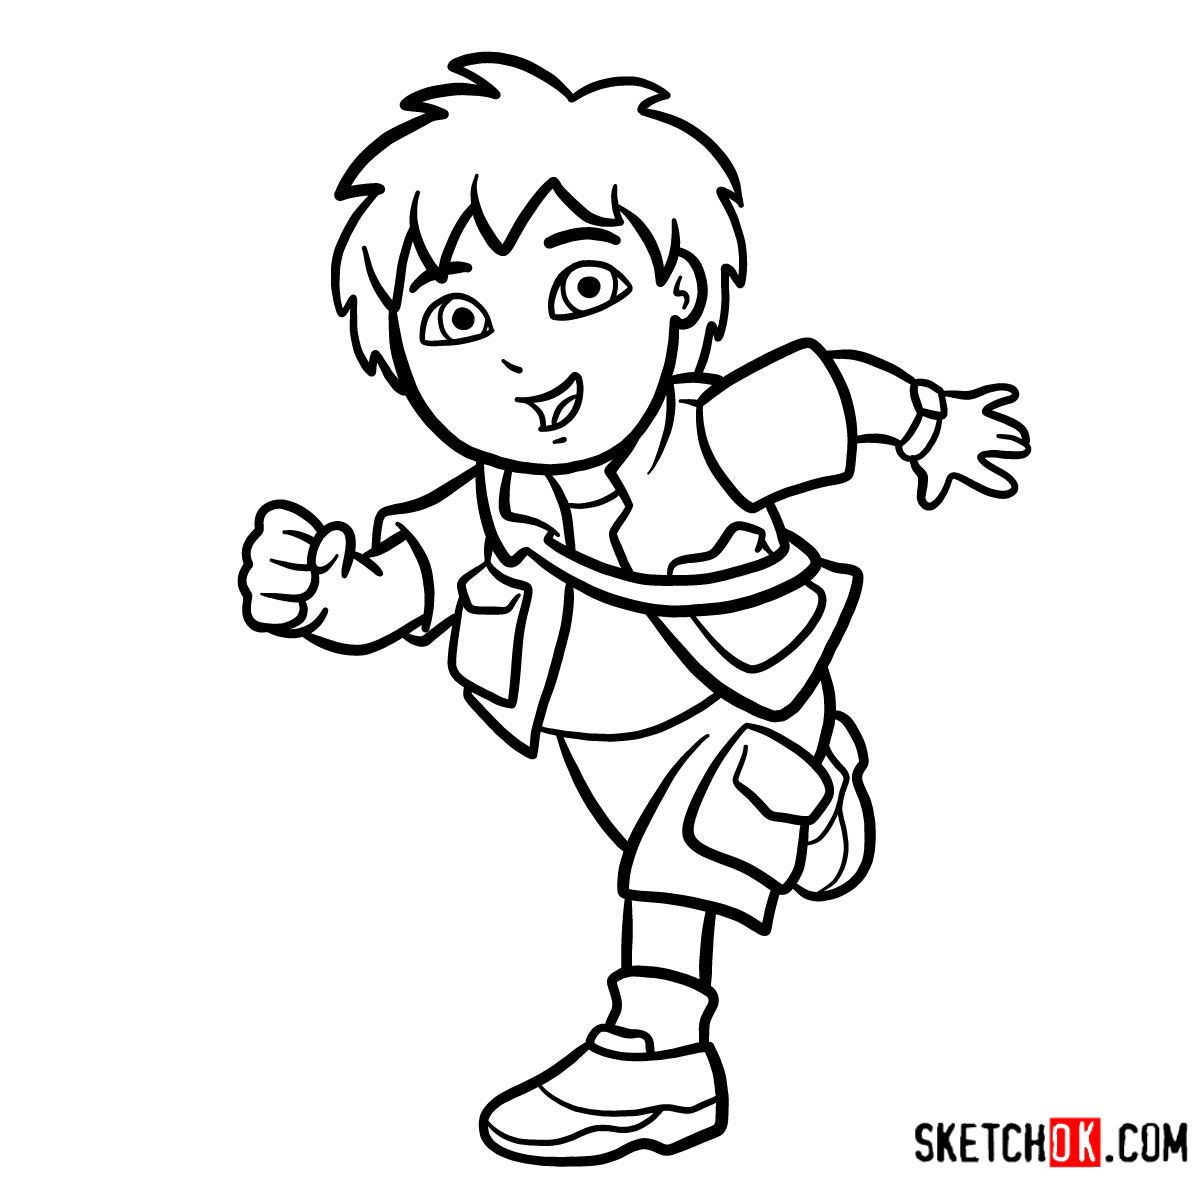 How to draw Diego | Dora the Explorer - coloring